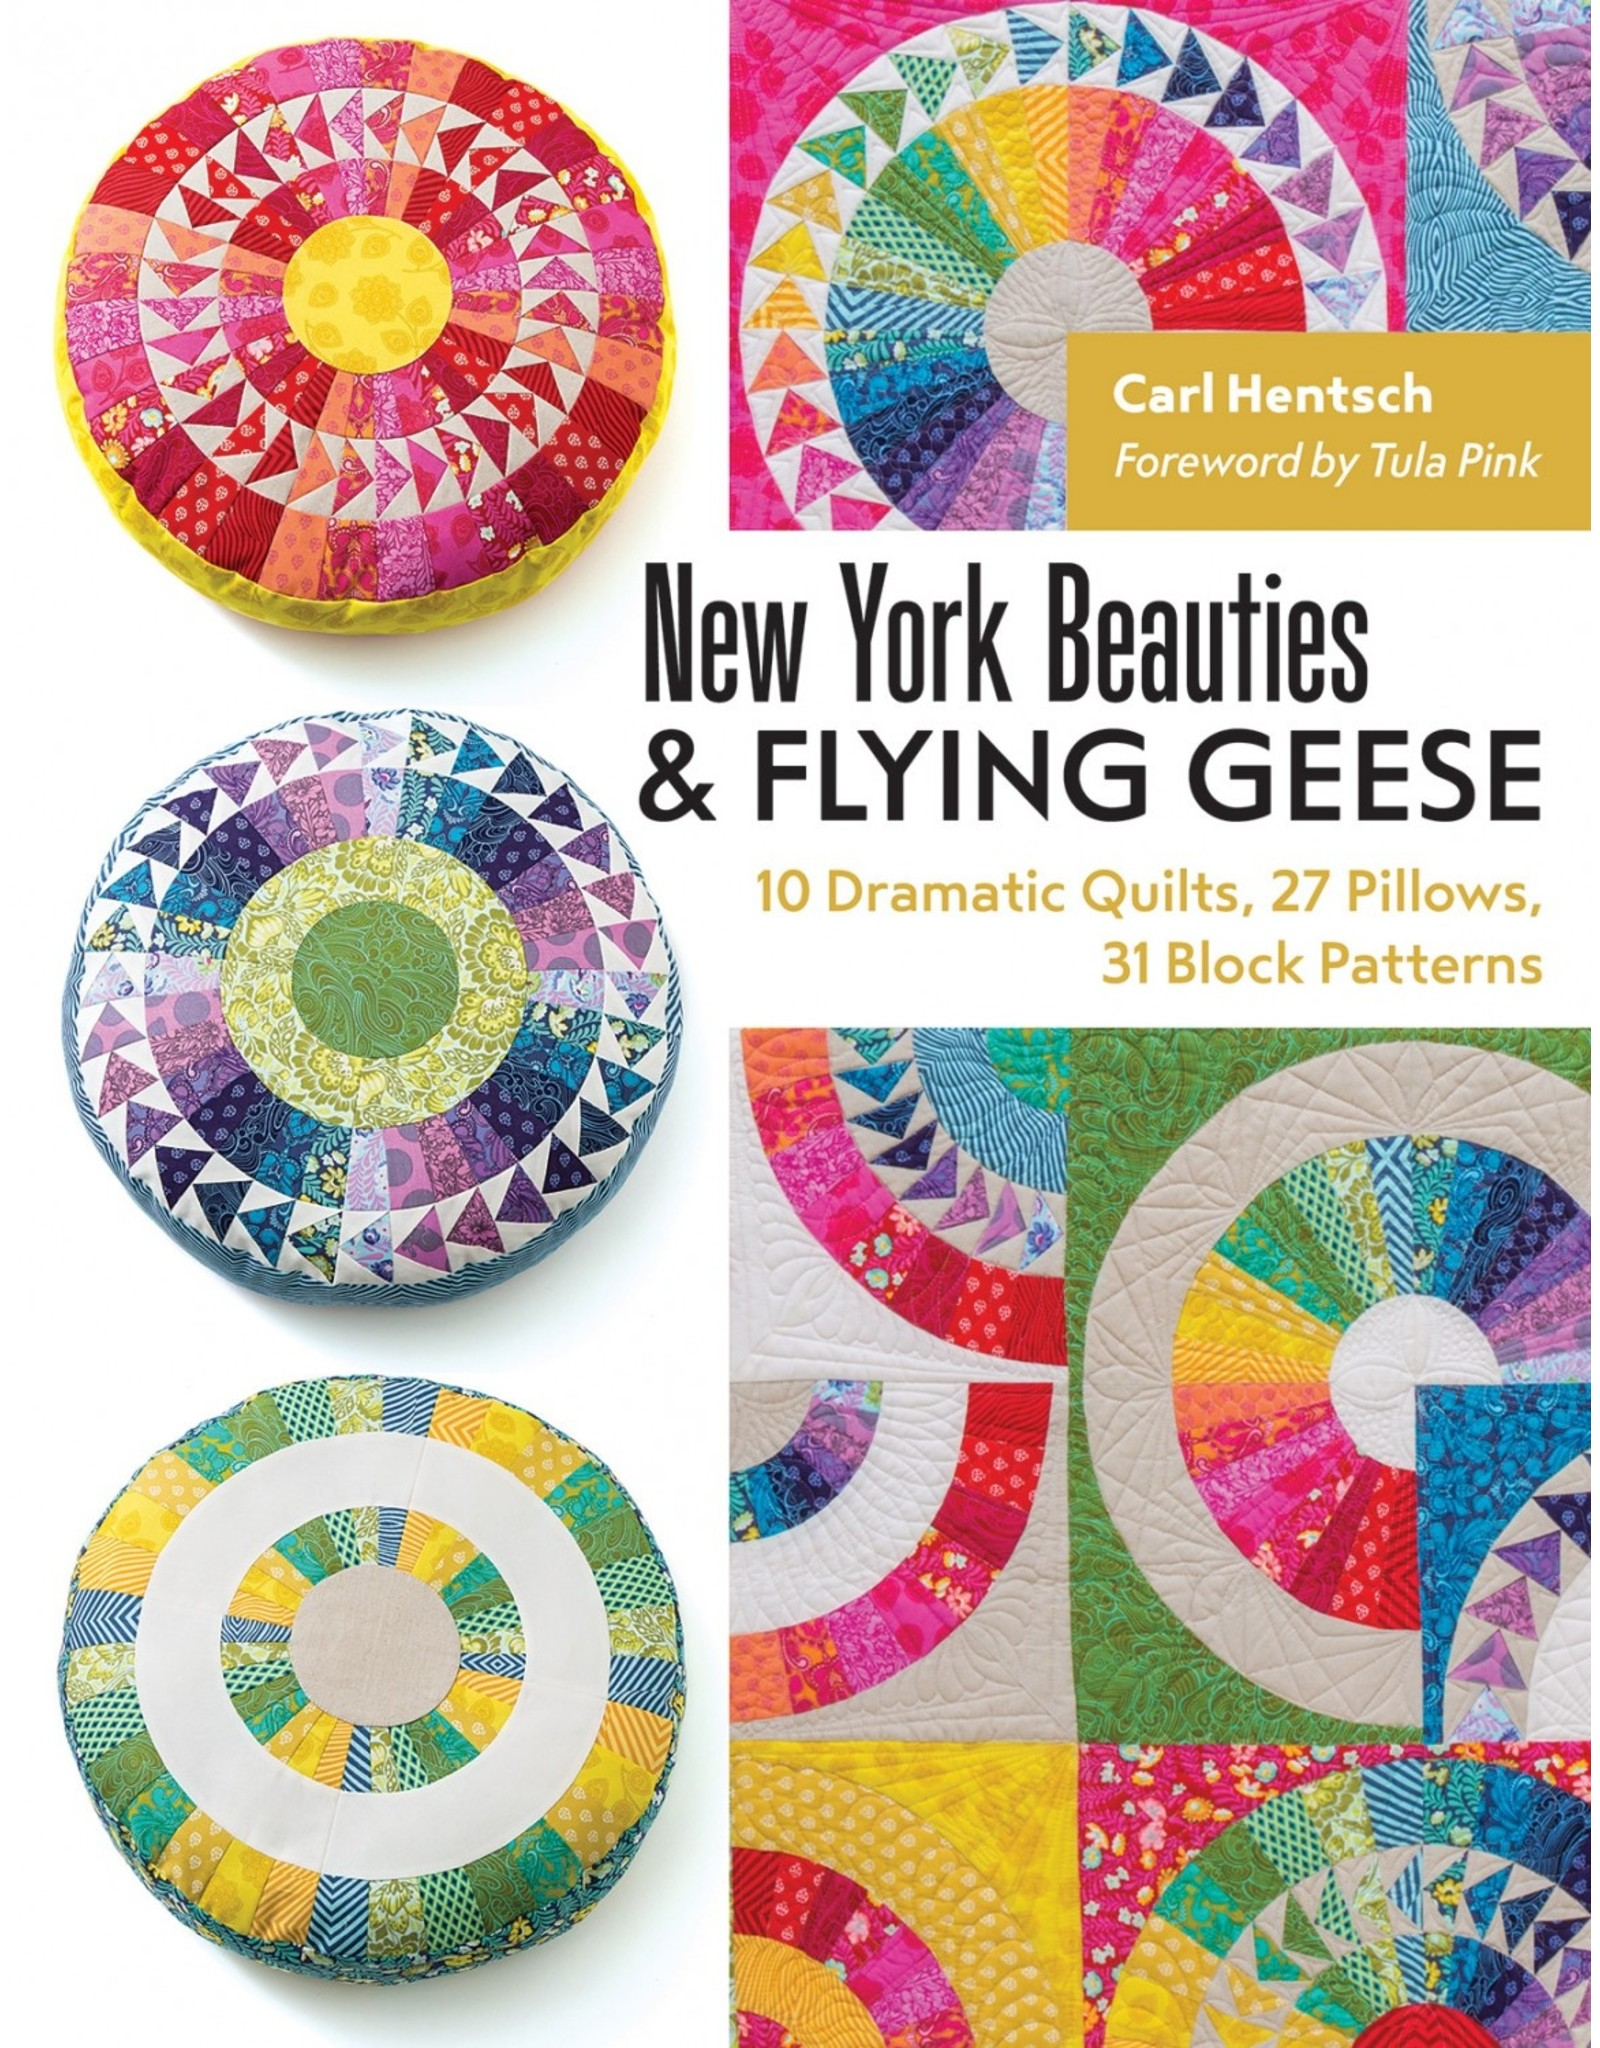 CT Publishing New York Beauties & Flying Geese - Carl Hentsch